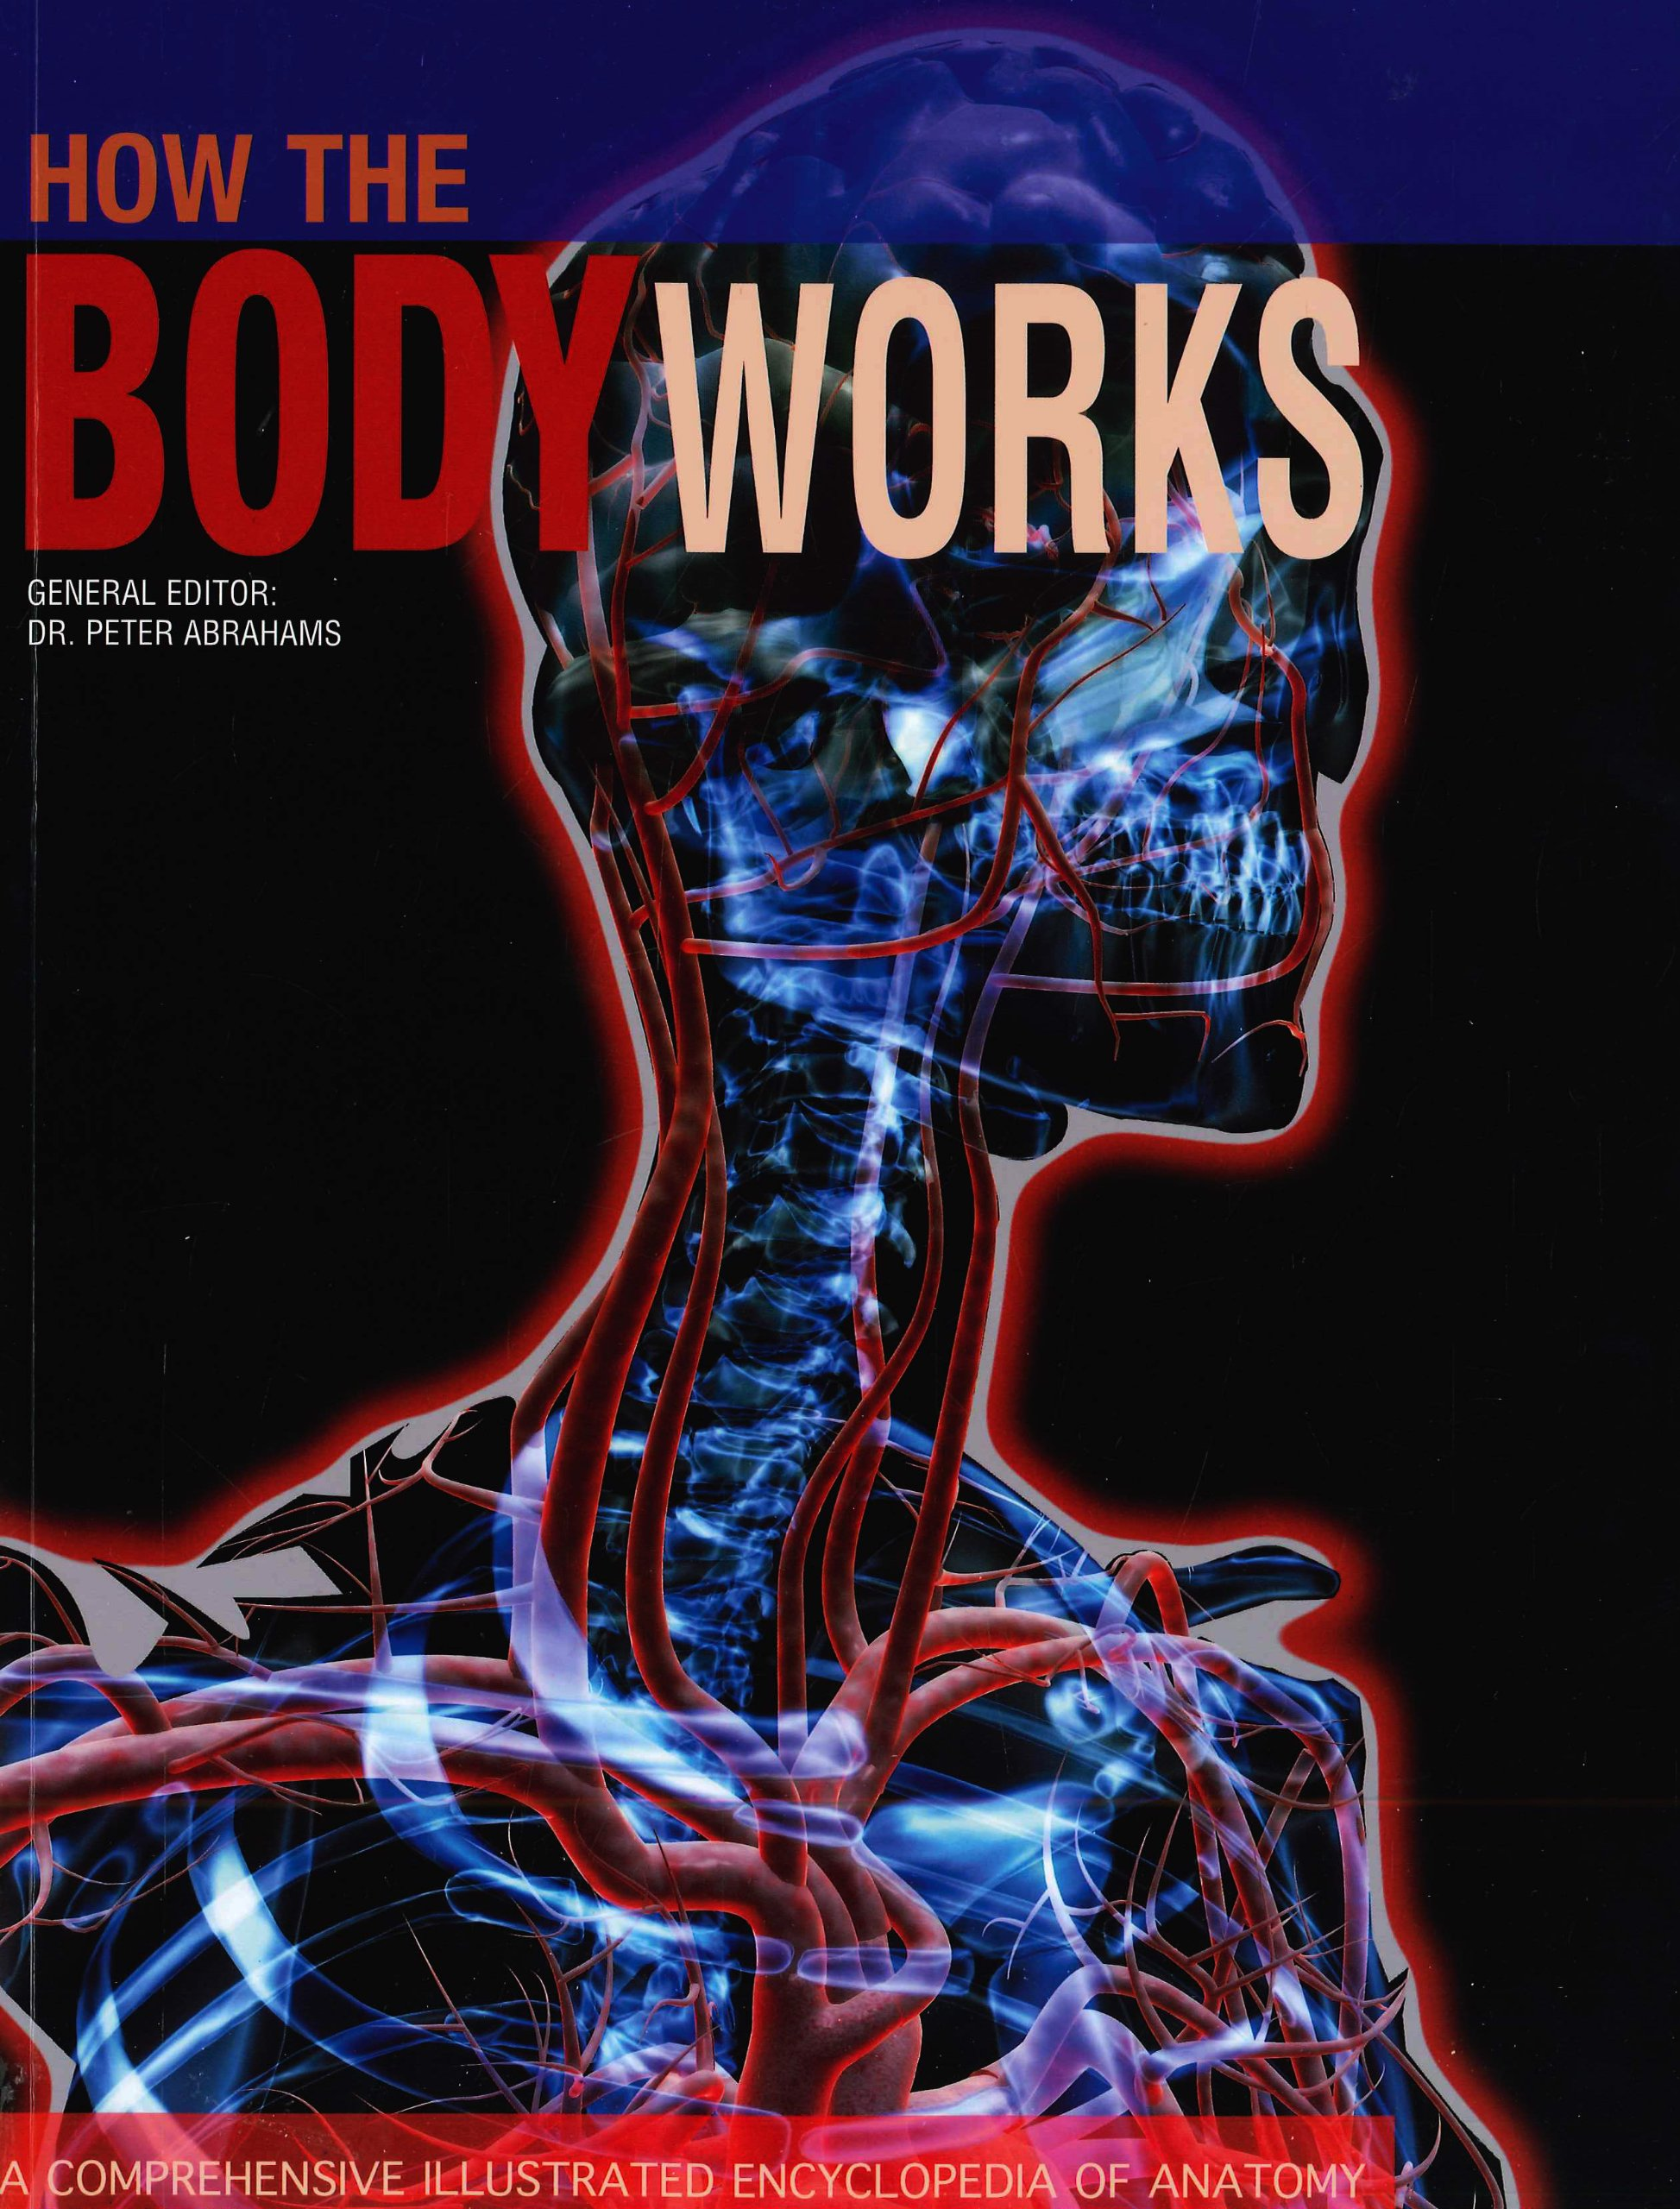 Amazon.in: Buy How the Body Works Book Online at Low Prices in India ...